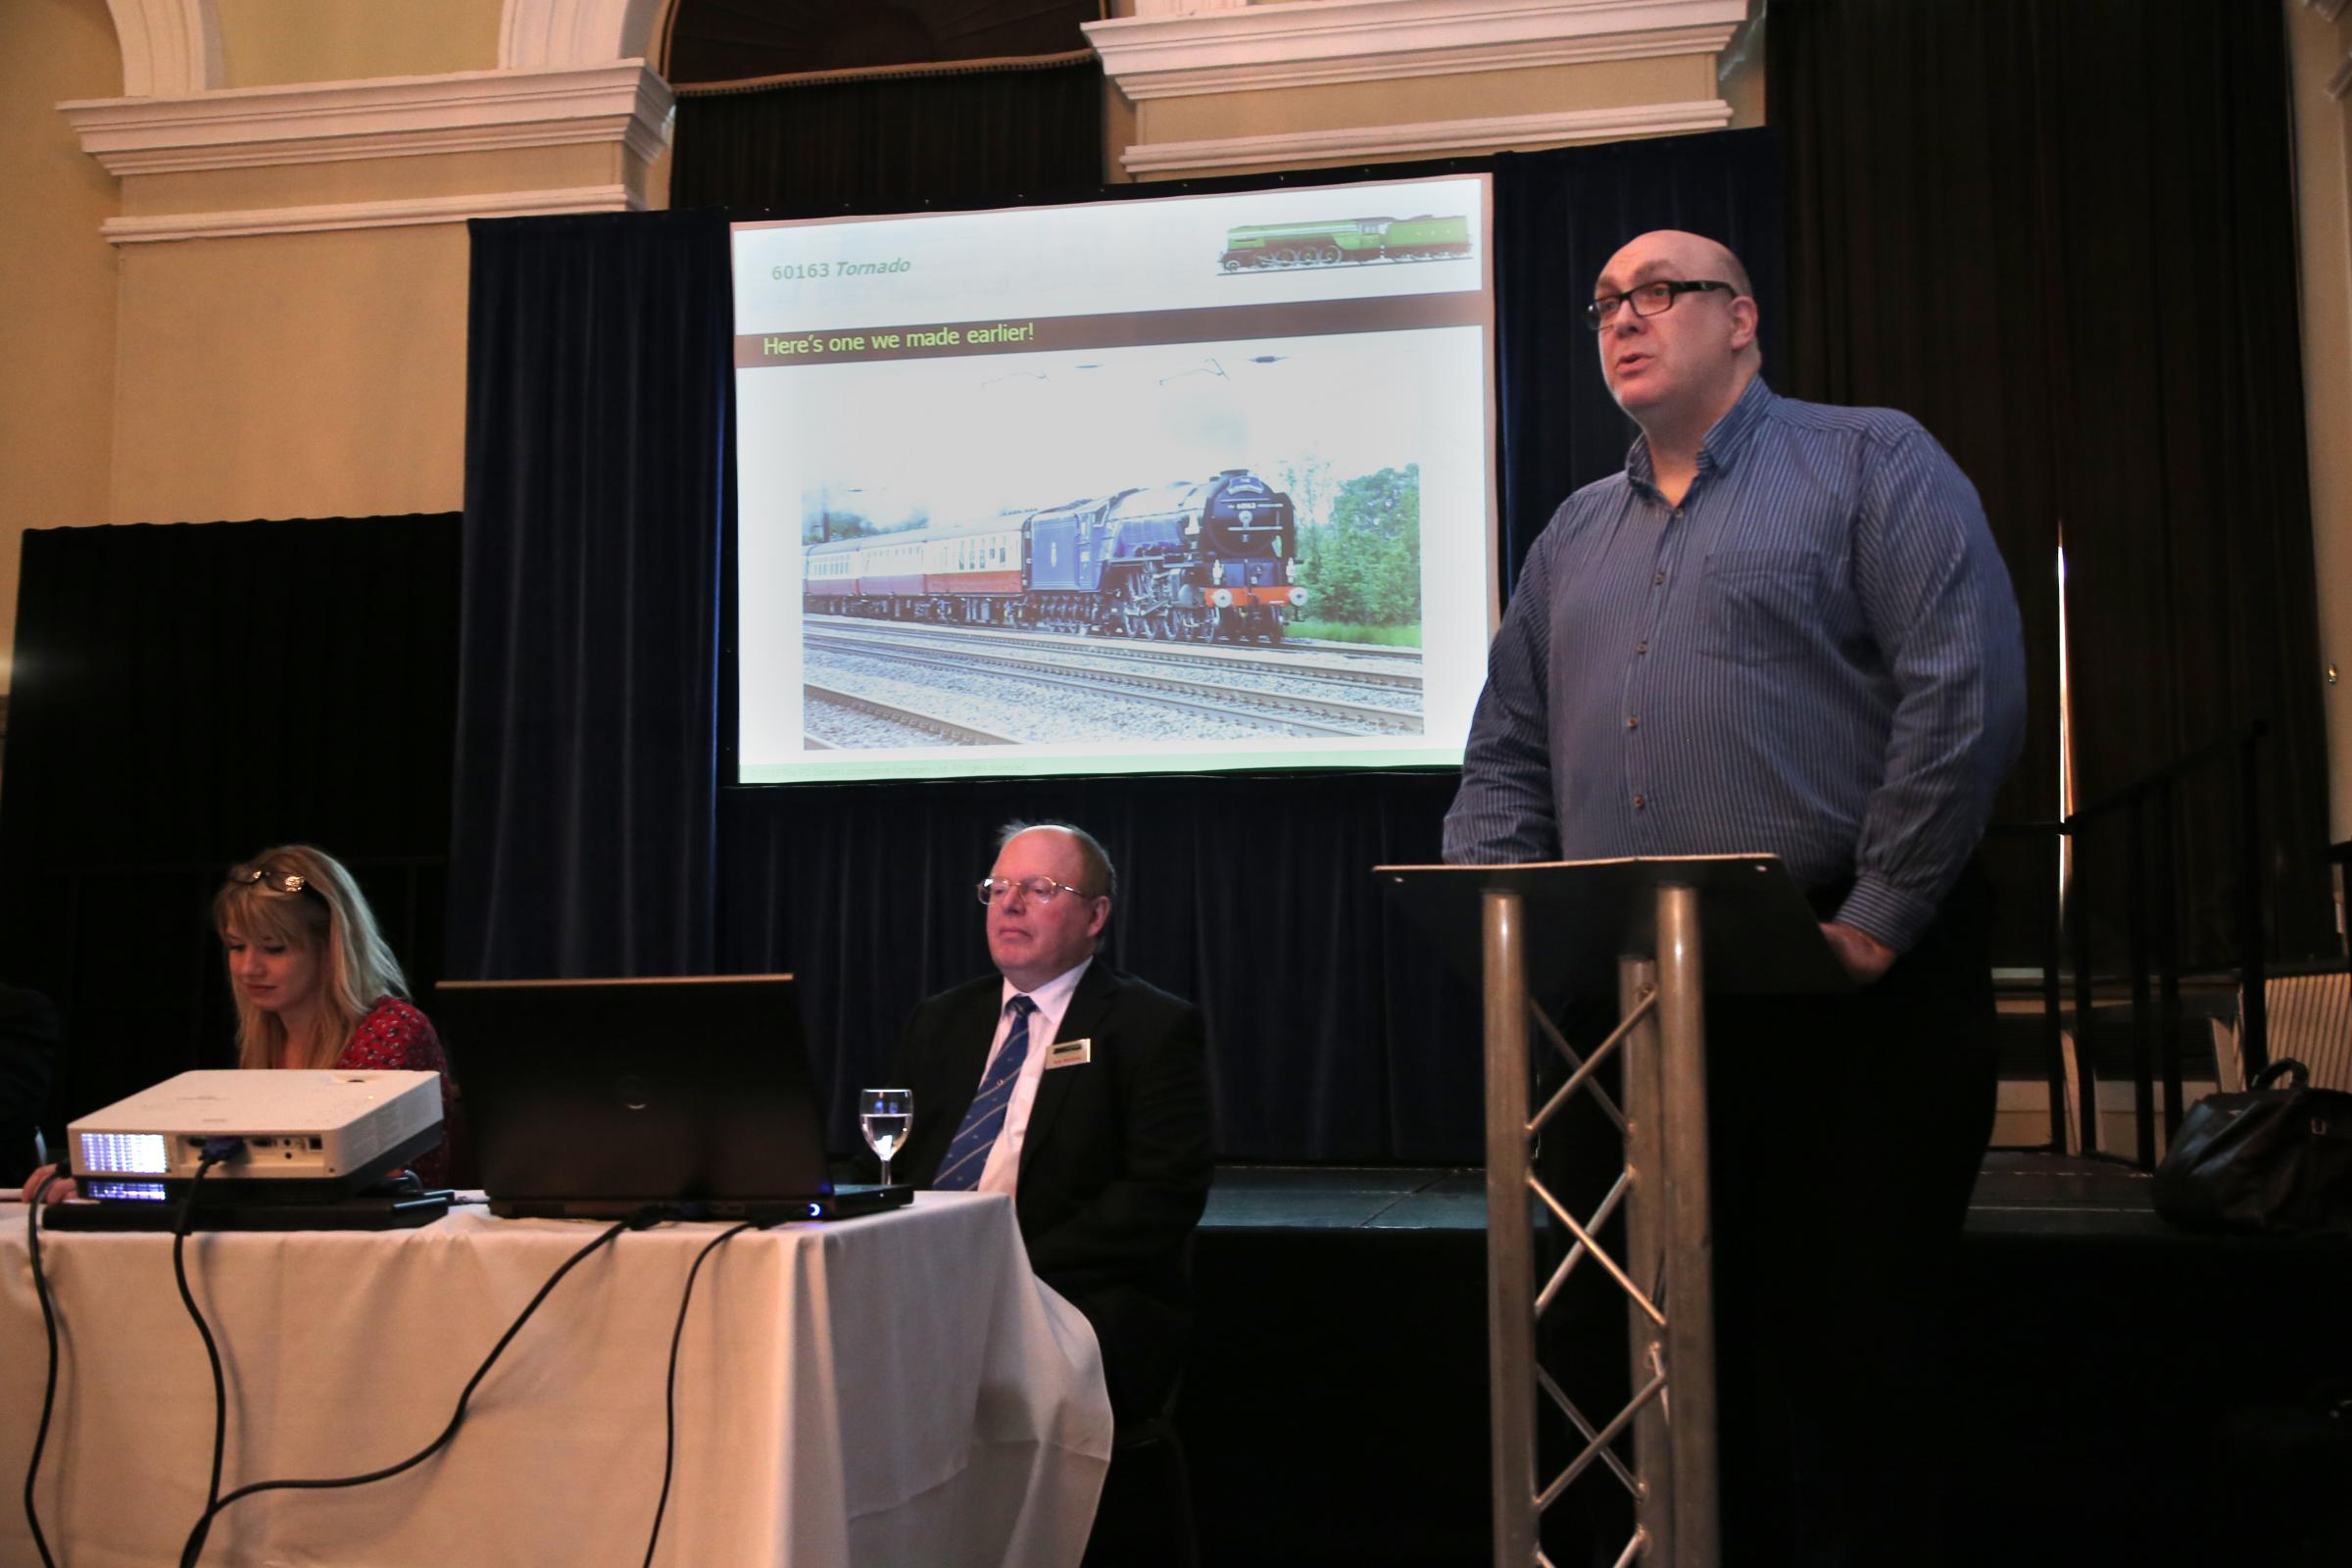 GRAND PLANS: Mark Allatt, chairman of the company behind plans for the multi-million pound Prince of Wales steam engine, outlines progress so far at a meeting in Darlington